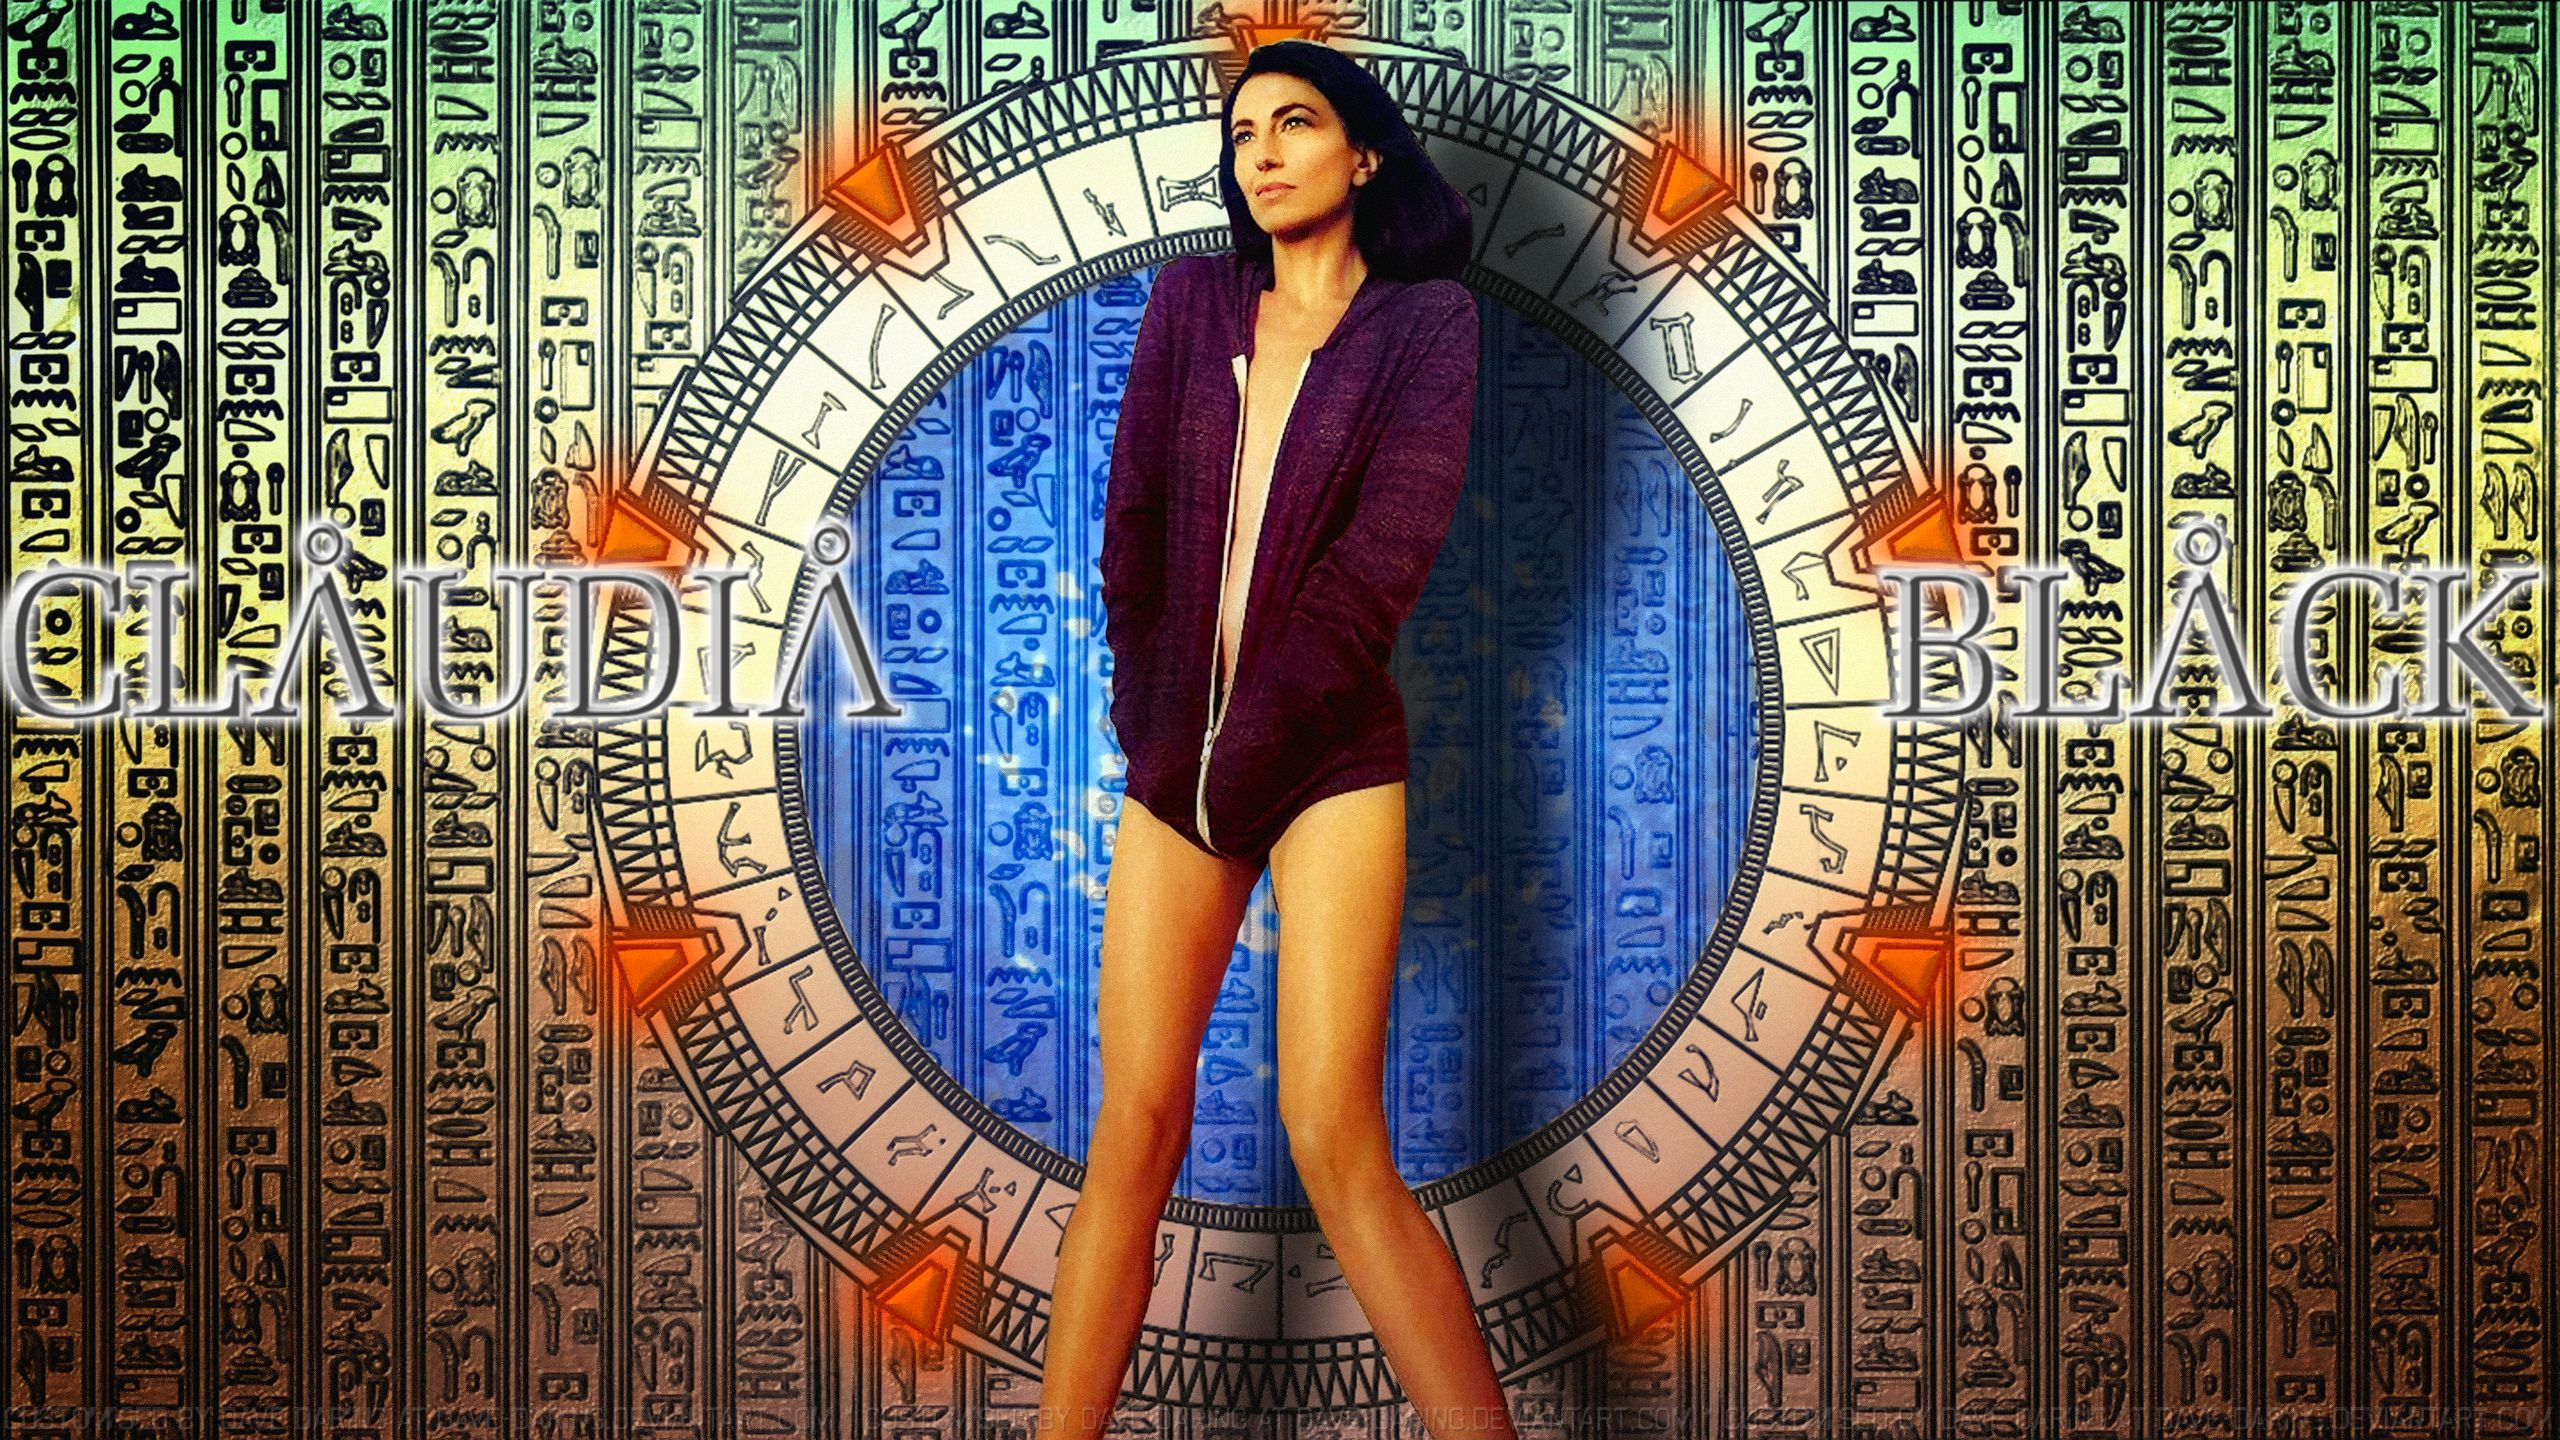 claudia Black Stargate Skimpy by Dave-Daring on DeviantArt